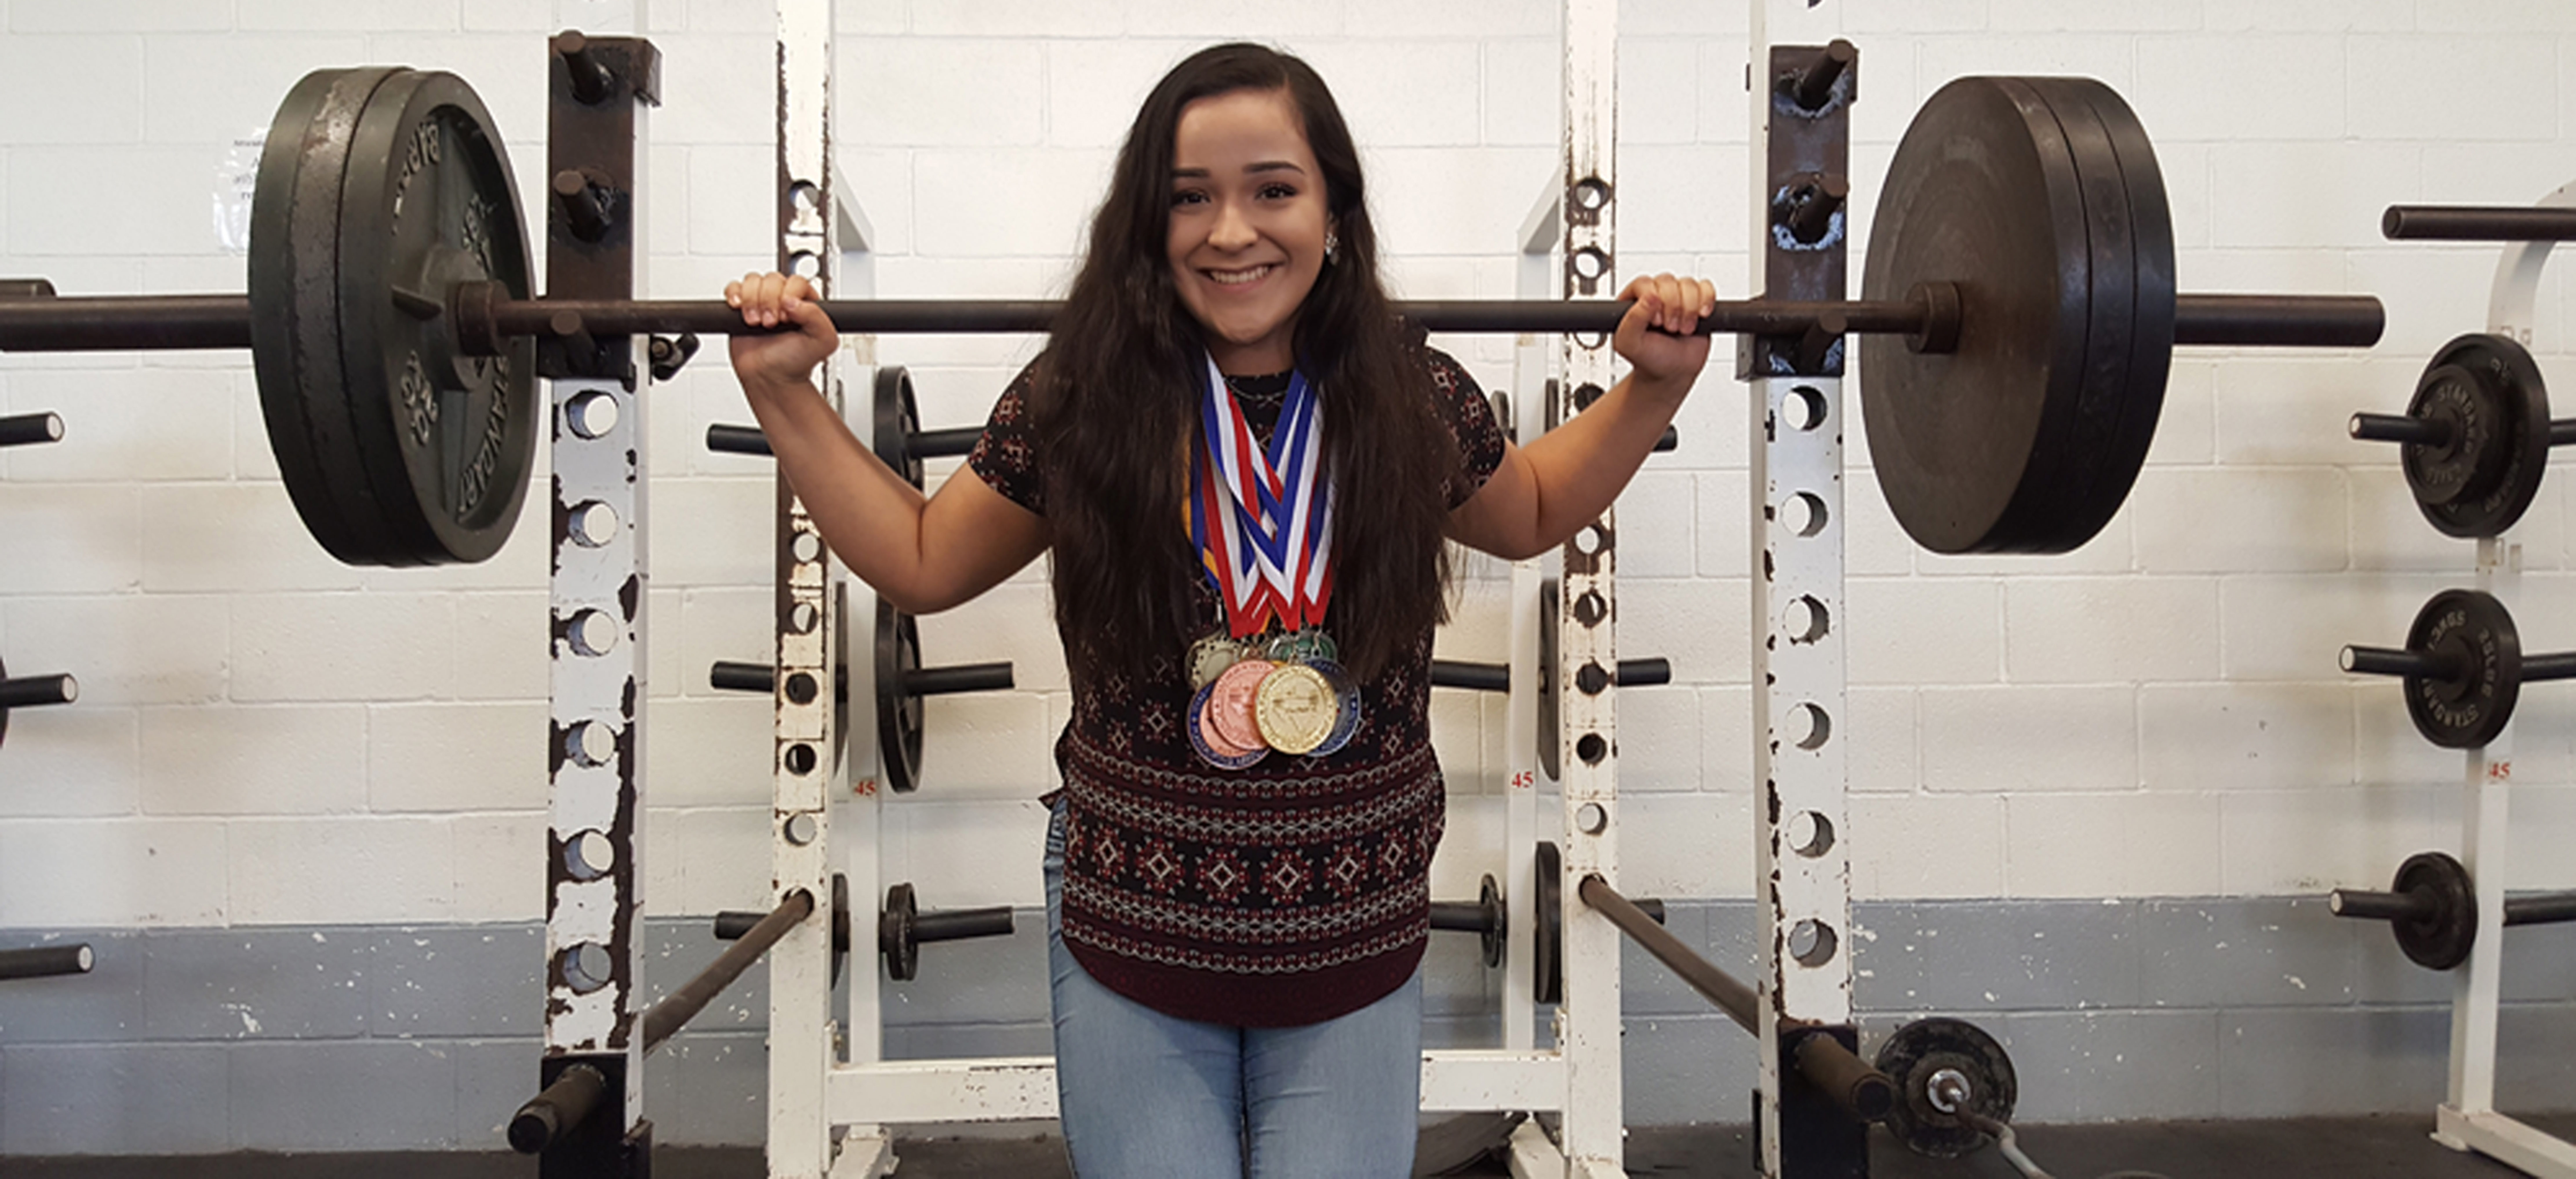 Unstoppable: Junior Powerlifter ready to shatter State